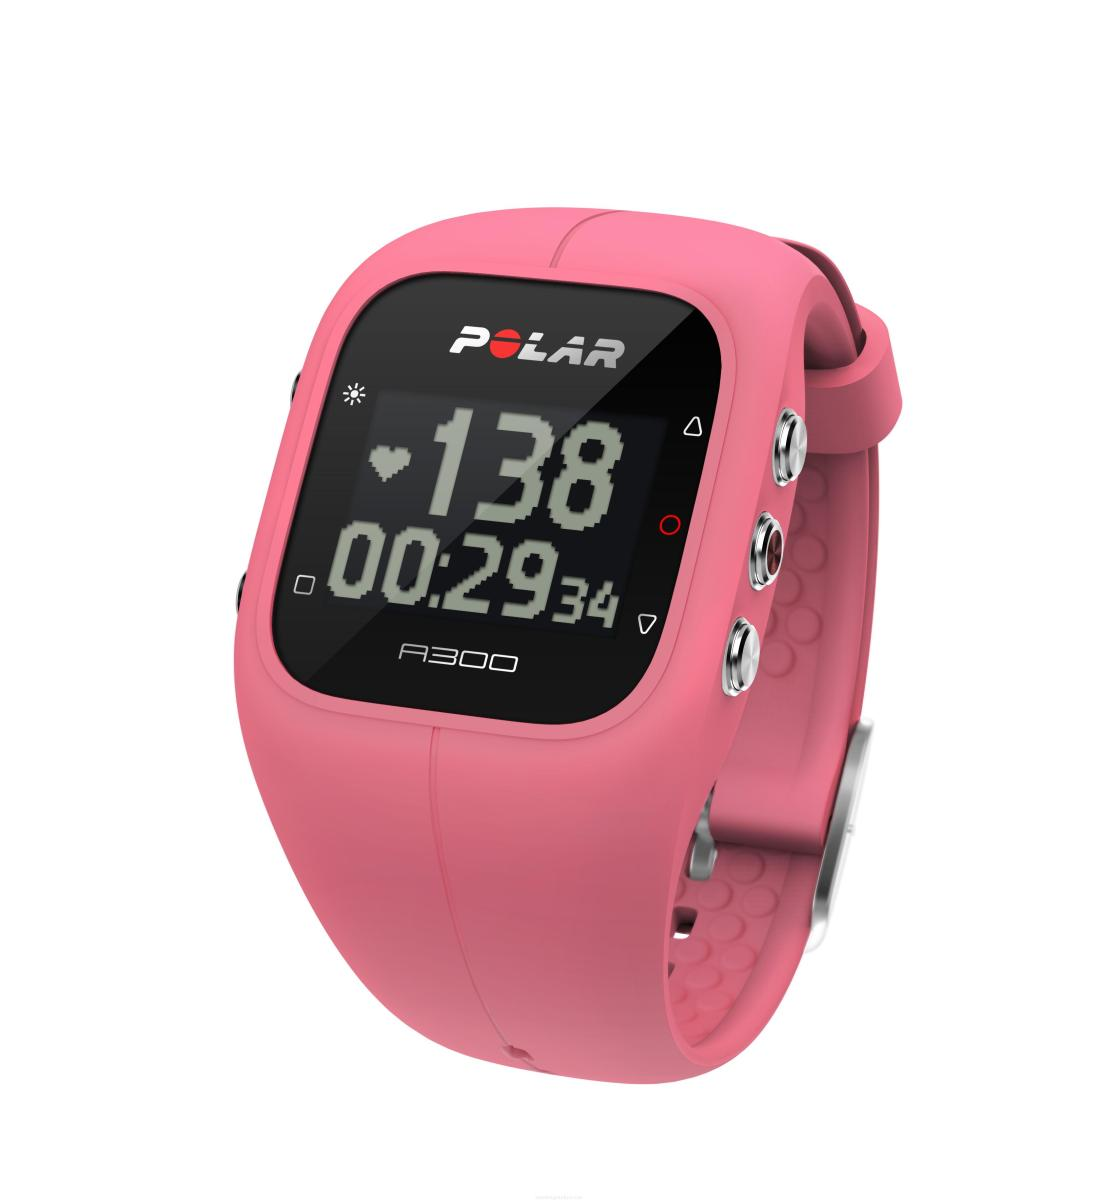 Polar A300 Fitness and Activity Monitor